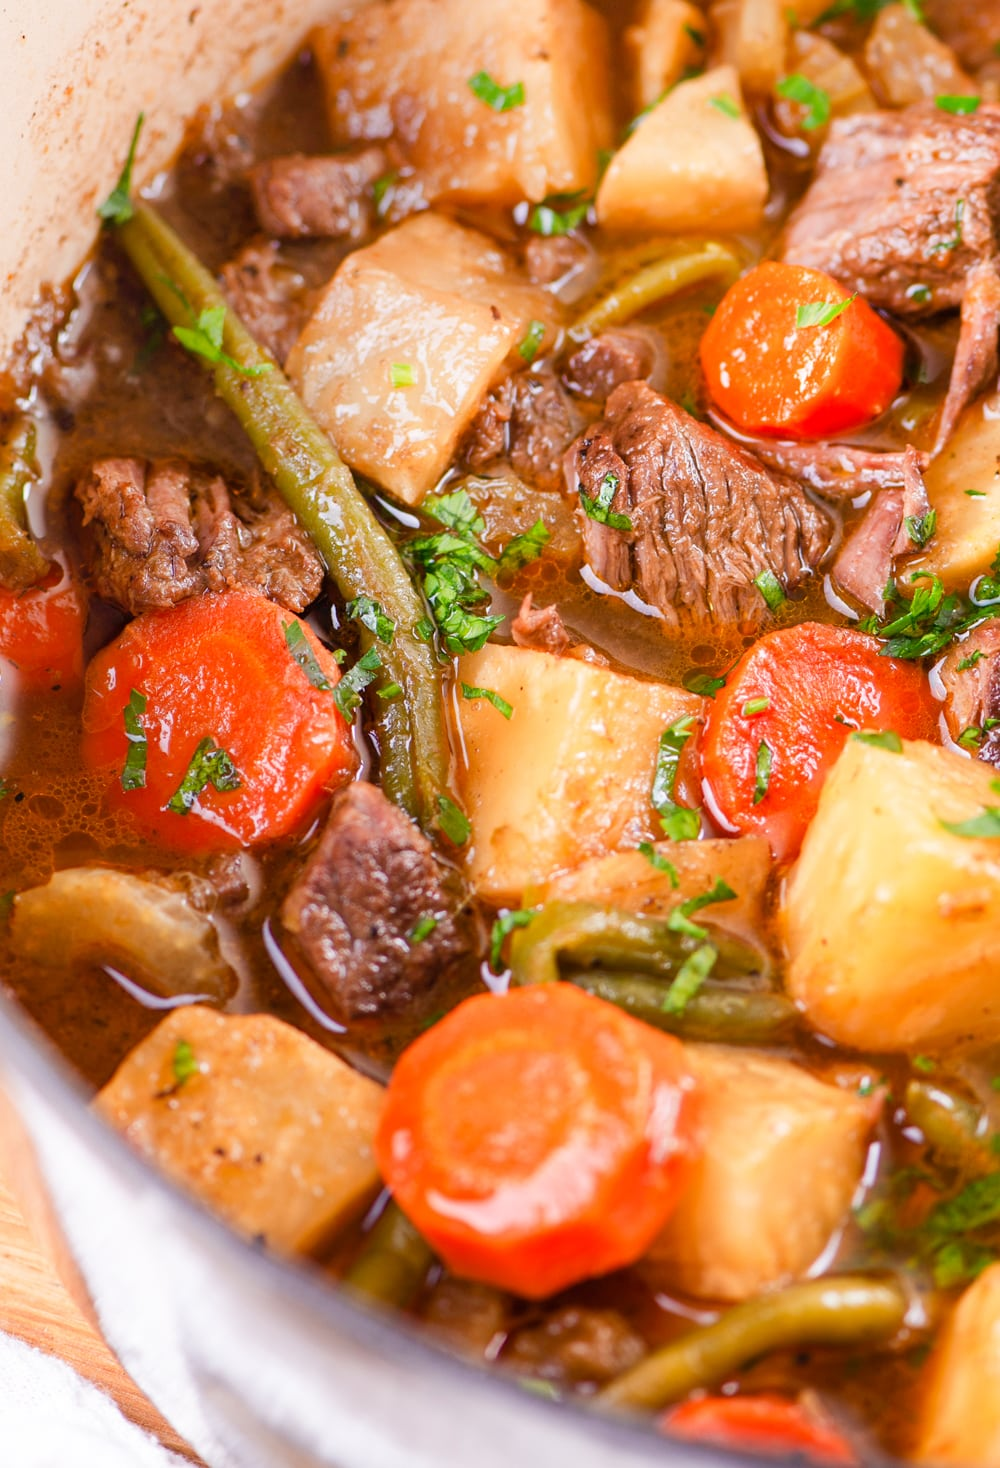 Chunks of beef, kohlrabi, and potatoes being cooked in a broth.